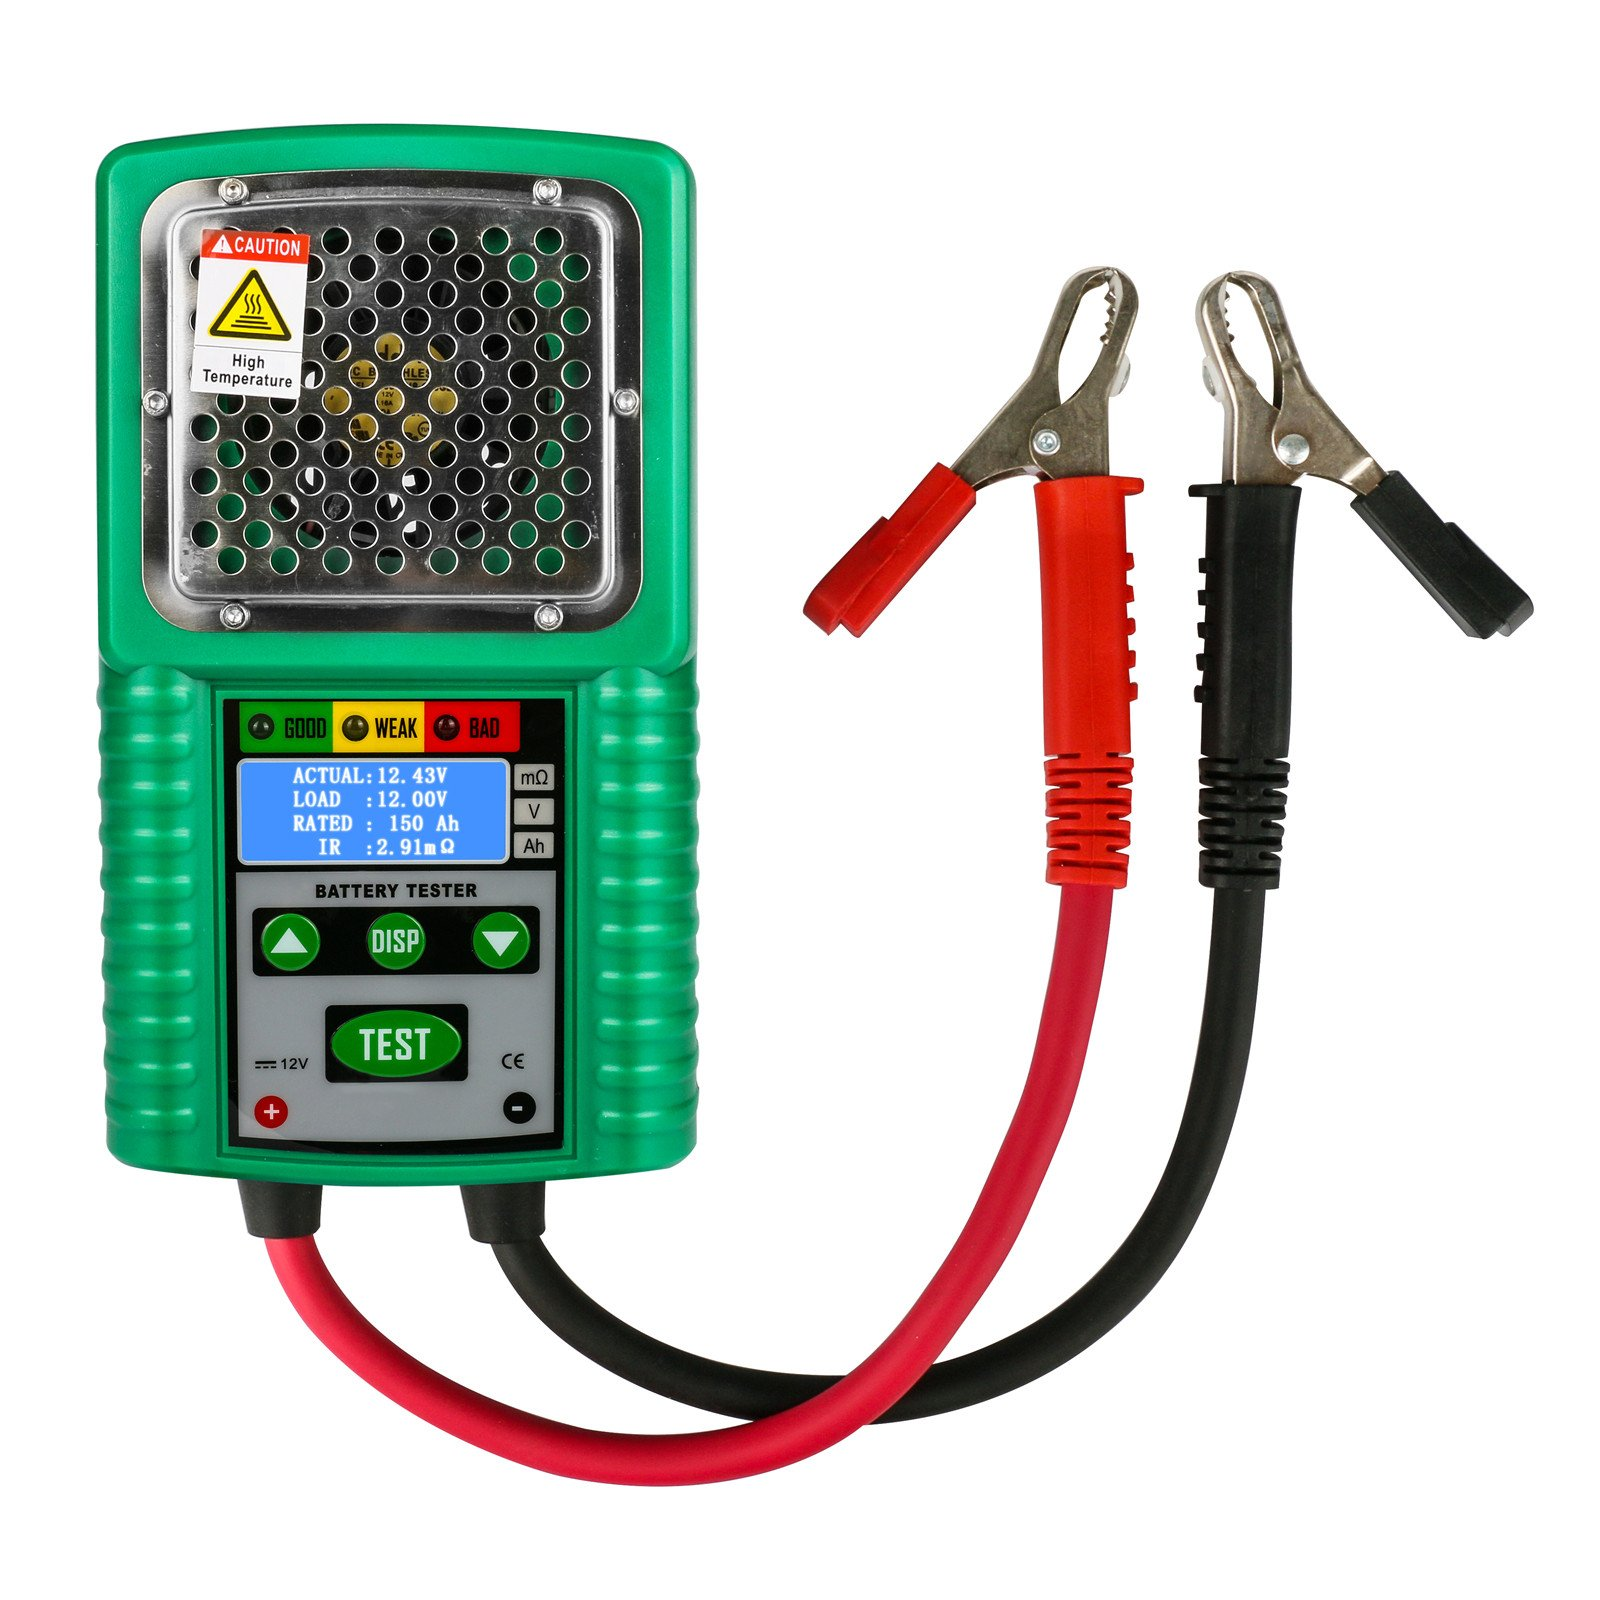 Automotive Battery Tester 6V / 12V Traction,Power Starting Battery Tester, Charge System Test 3 in 1 Digital Battery Analyzer Automotive Battery Load Tester for UPS,Solar Energy,Marine Battery